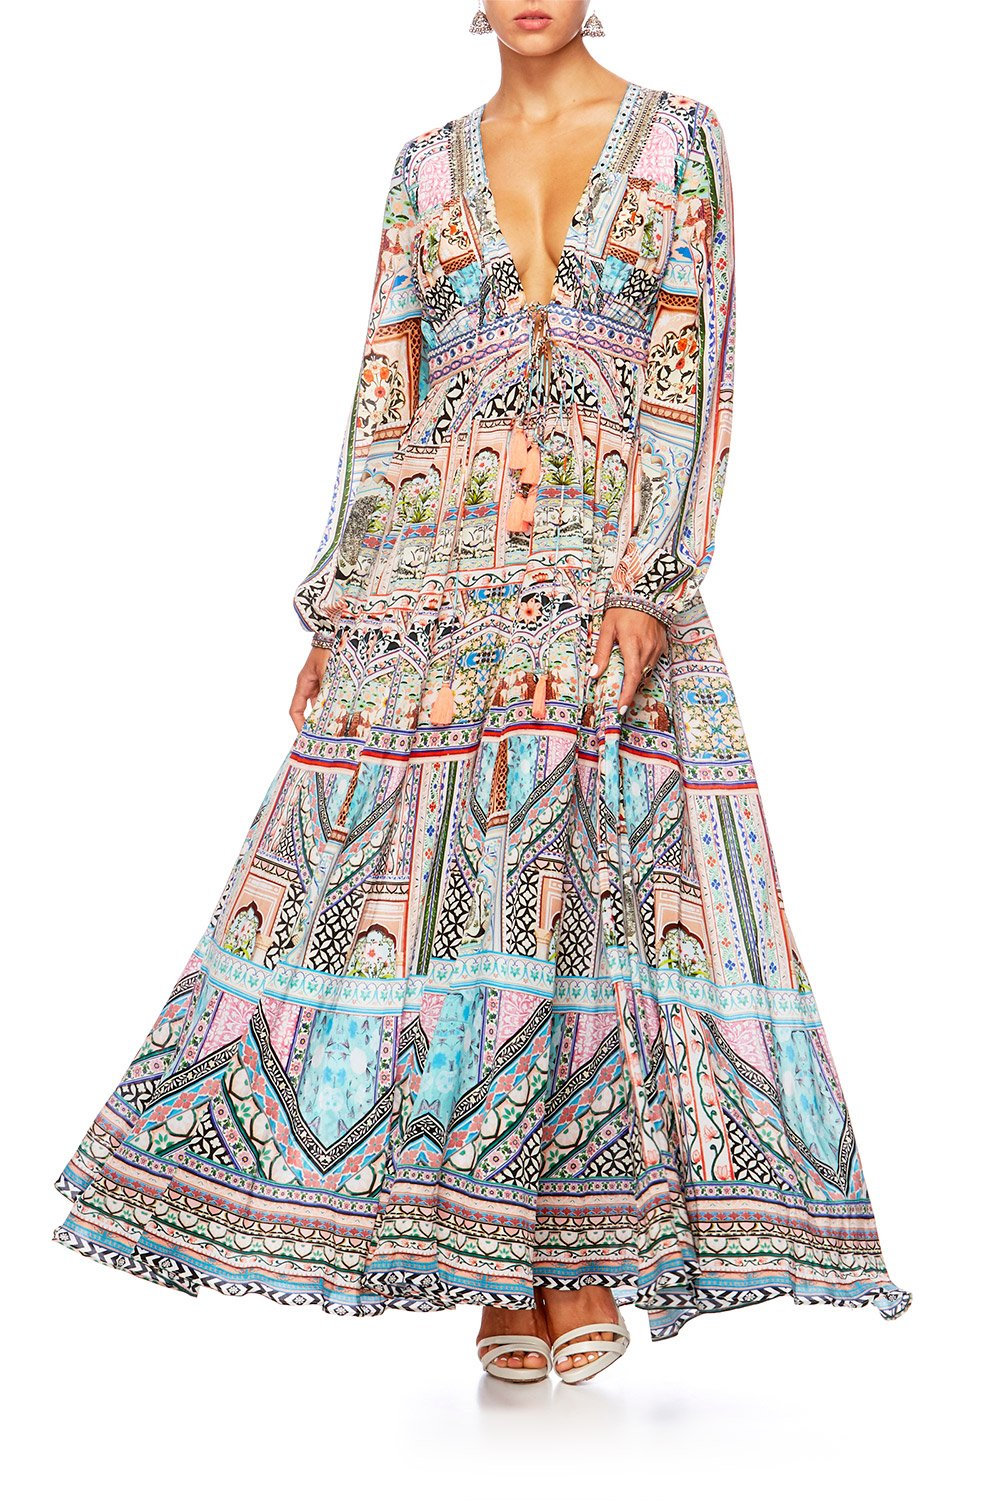 CAMILLA LADY LAKE PEASANT DRESS W TIE FRONT